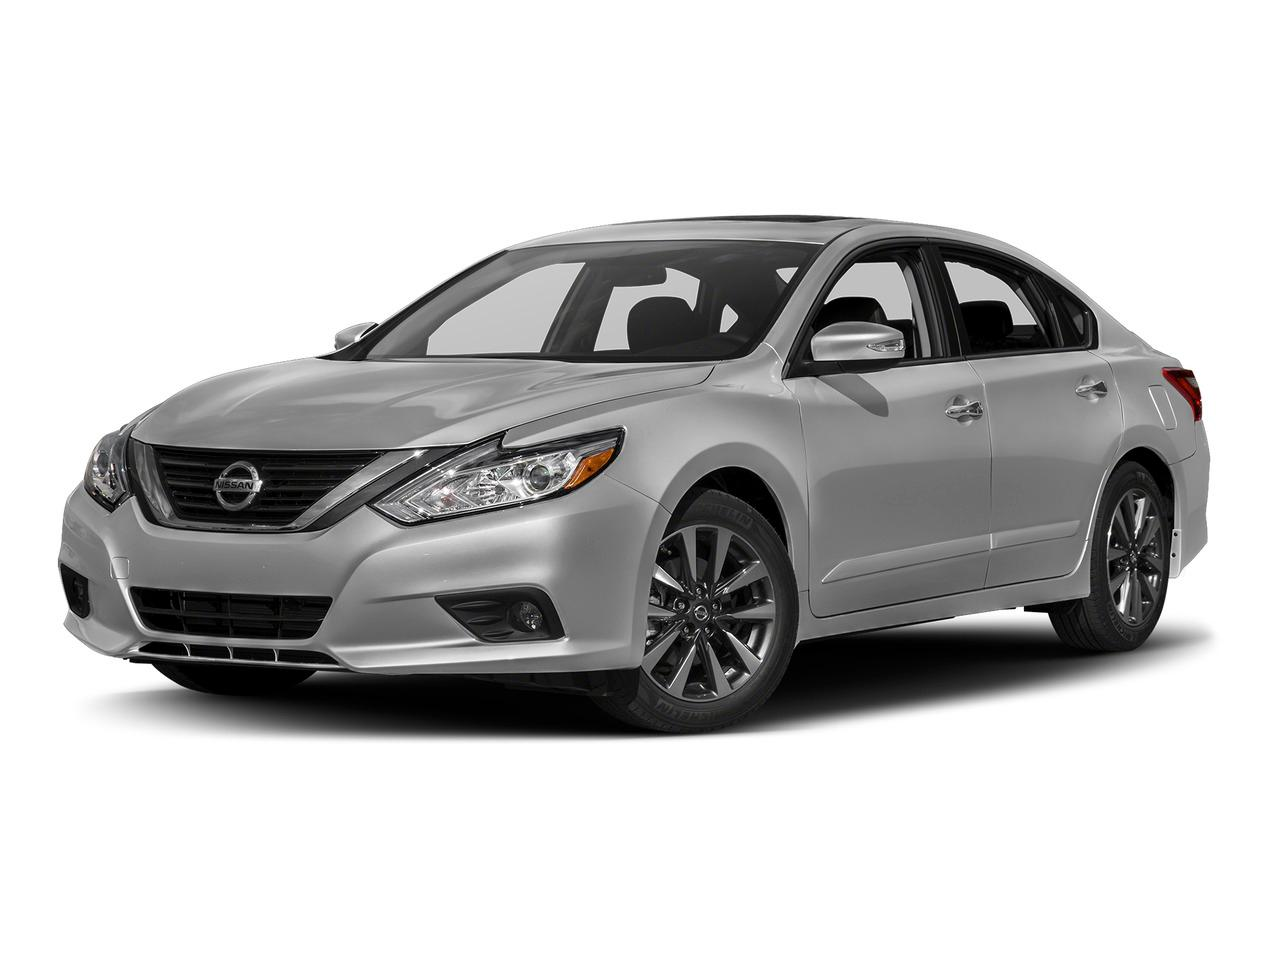 2017 Nissan Altima Vehicle Photo in Smyrna, GA 30080